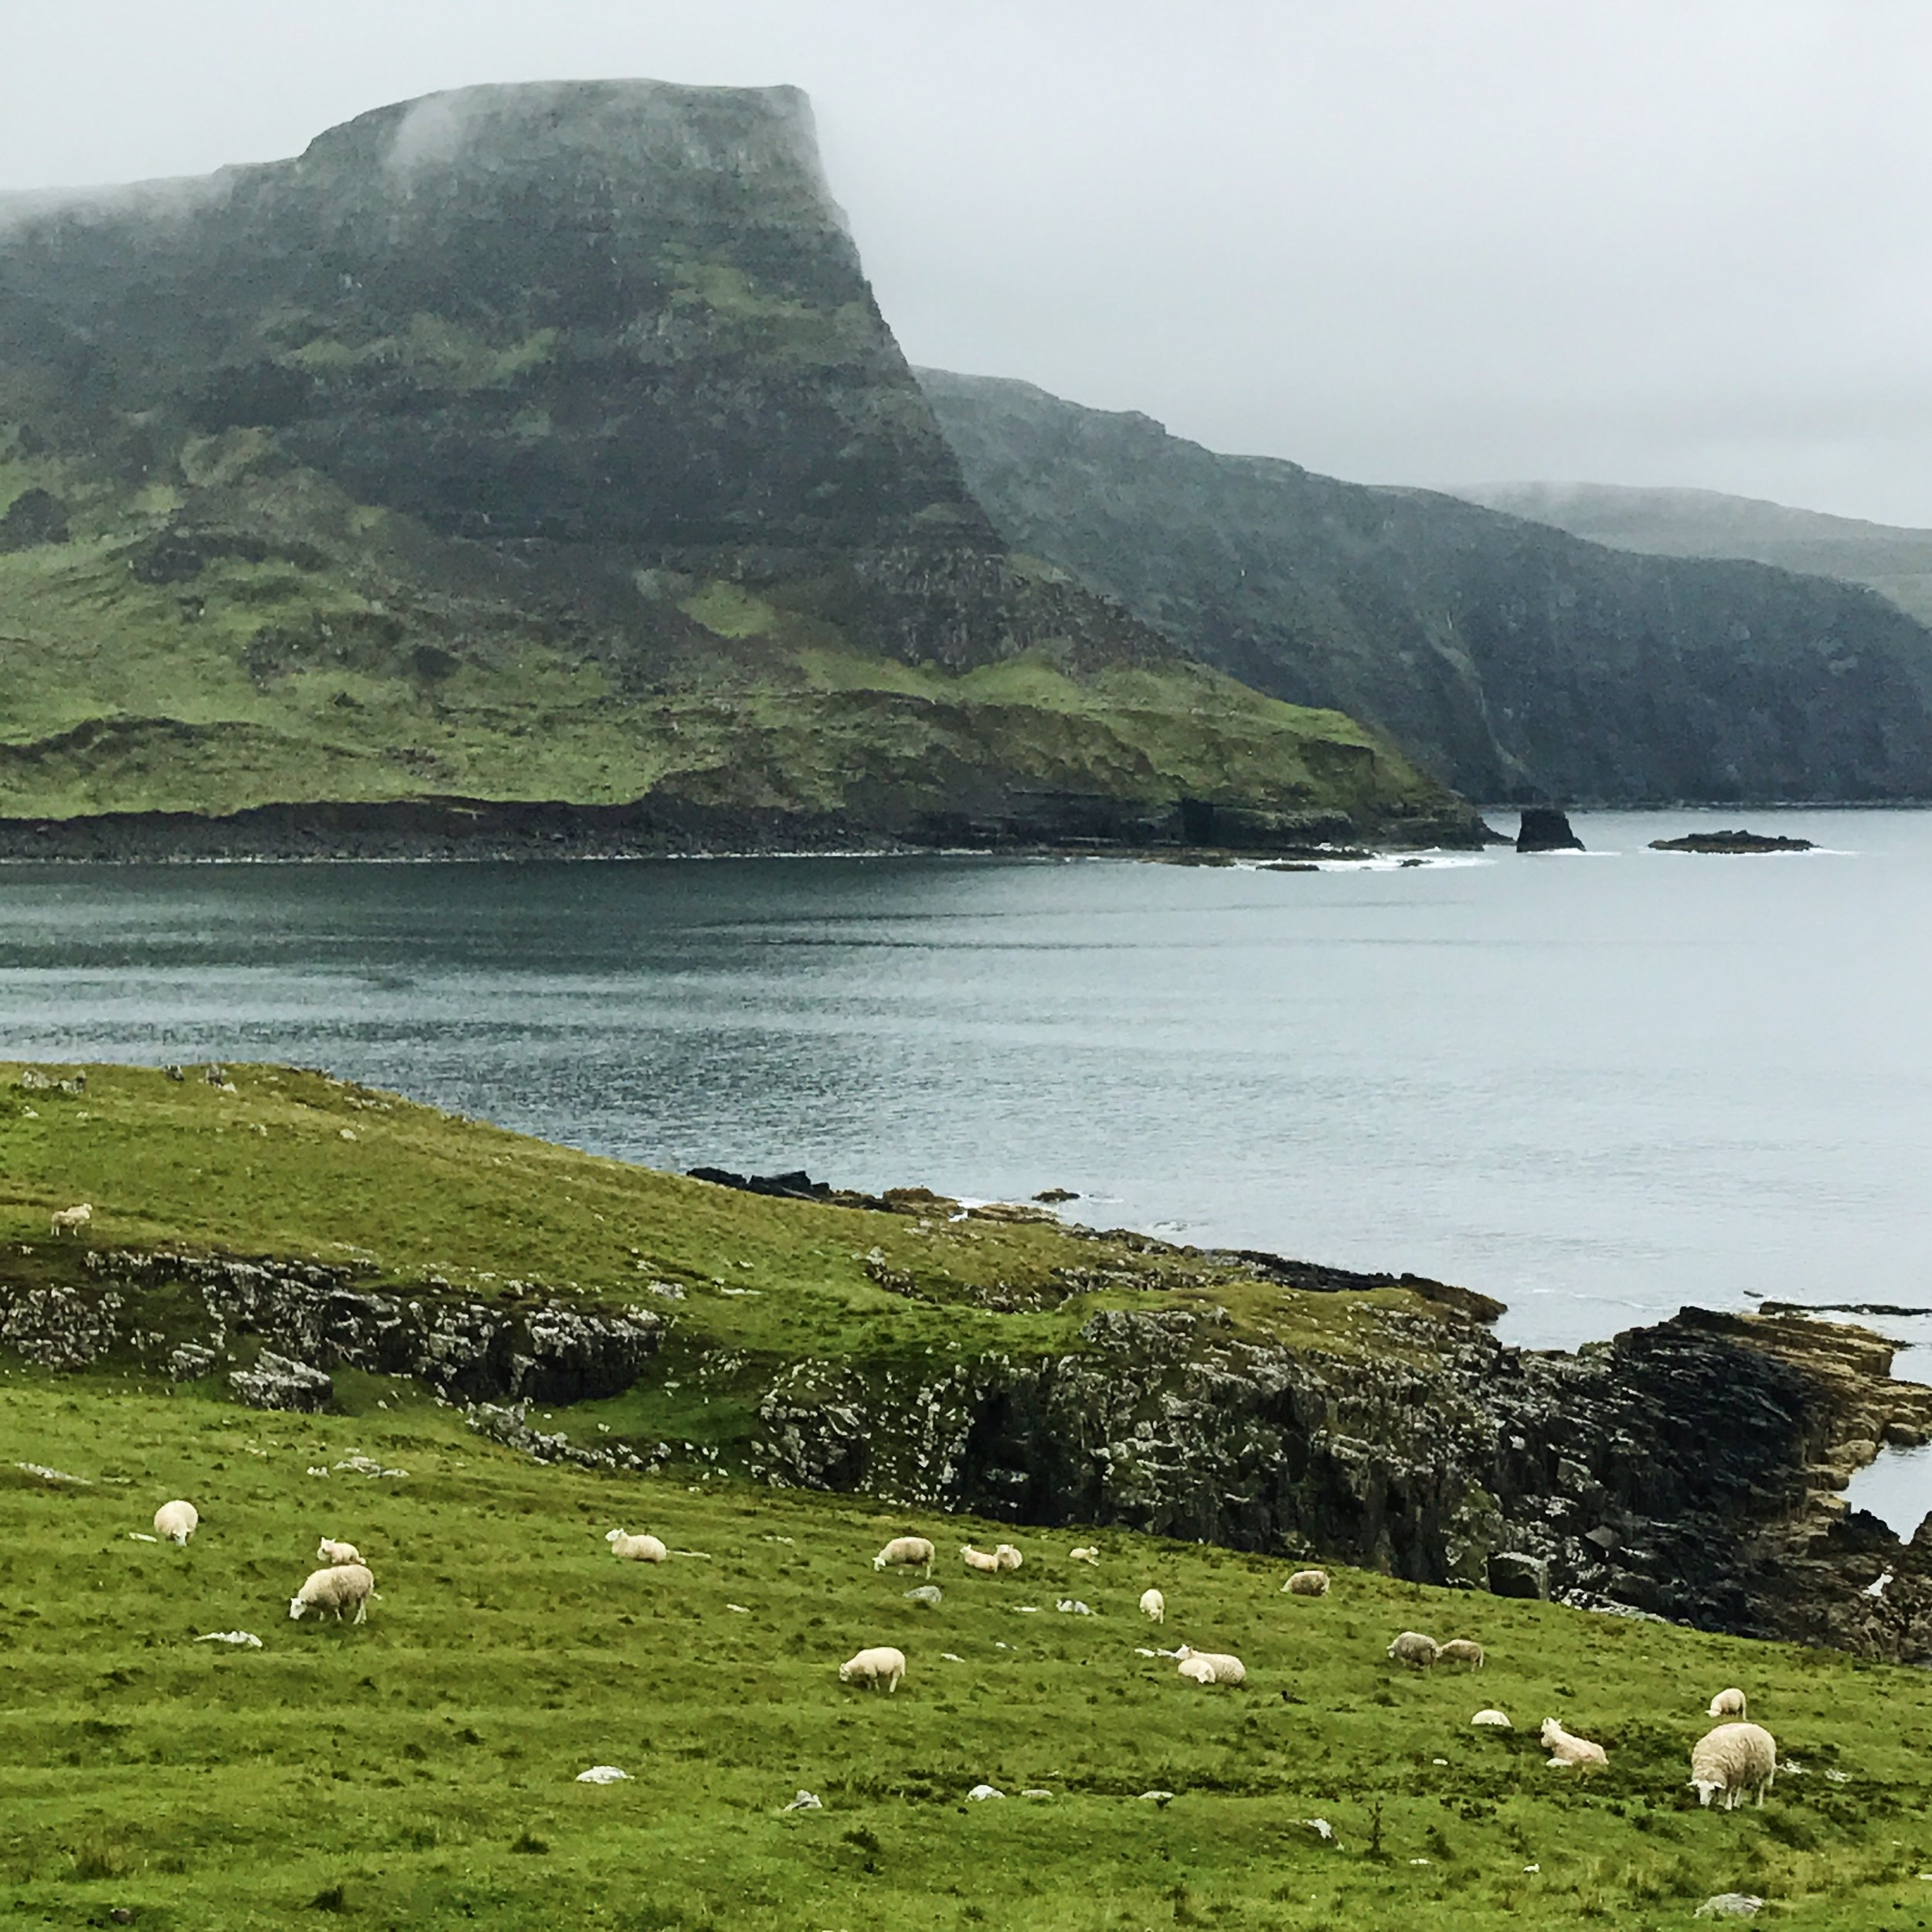 Neist Point. Supposedly you can see whales and dolphins here, but i was too busy filming sheep to notice.